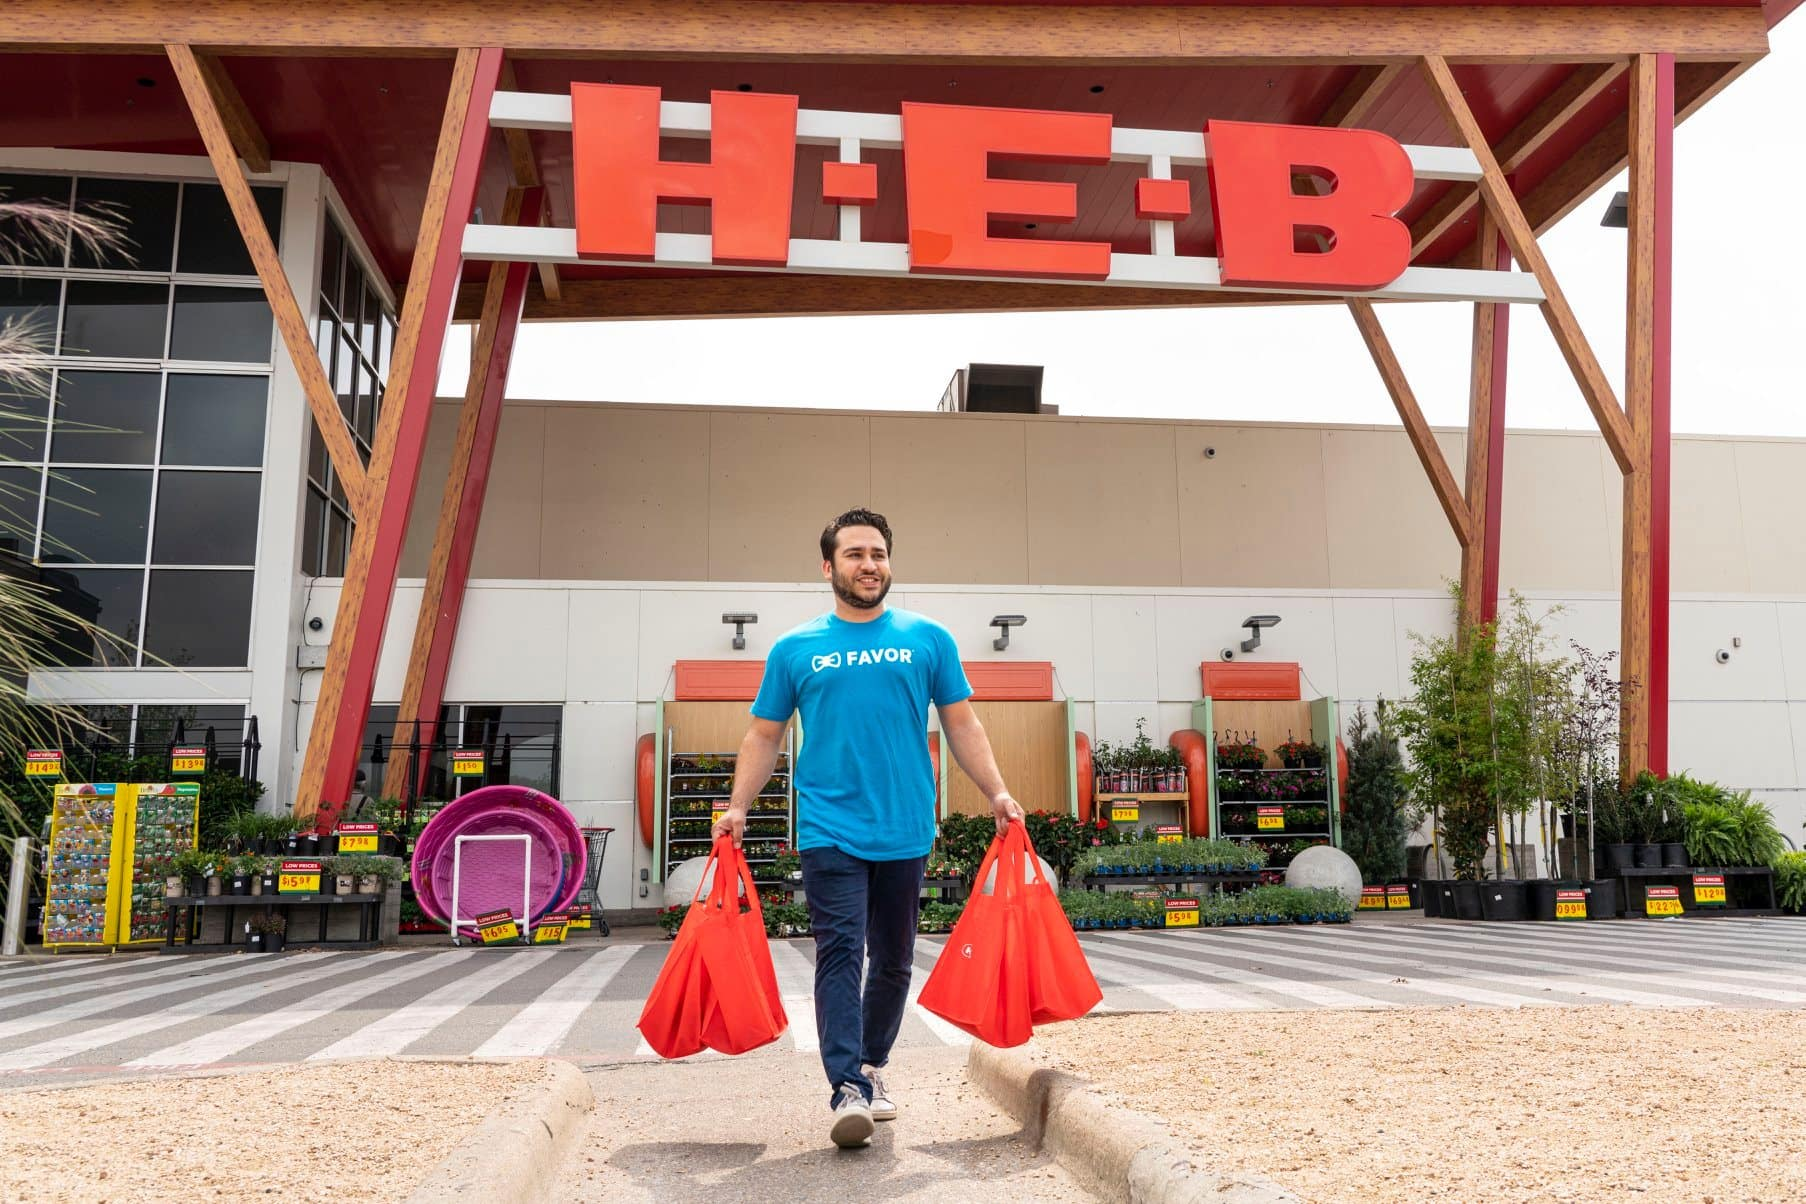 heb delivery